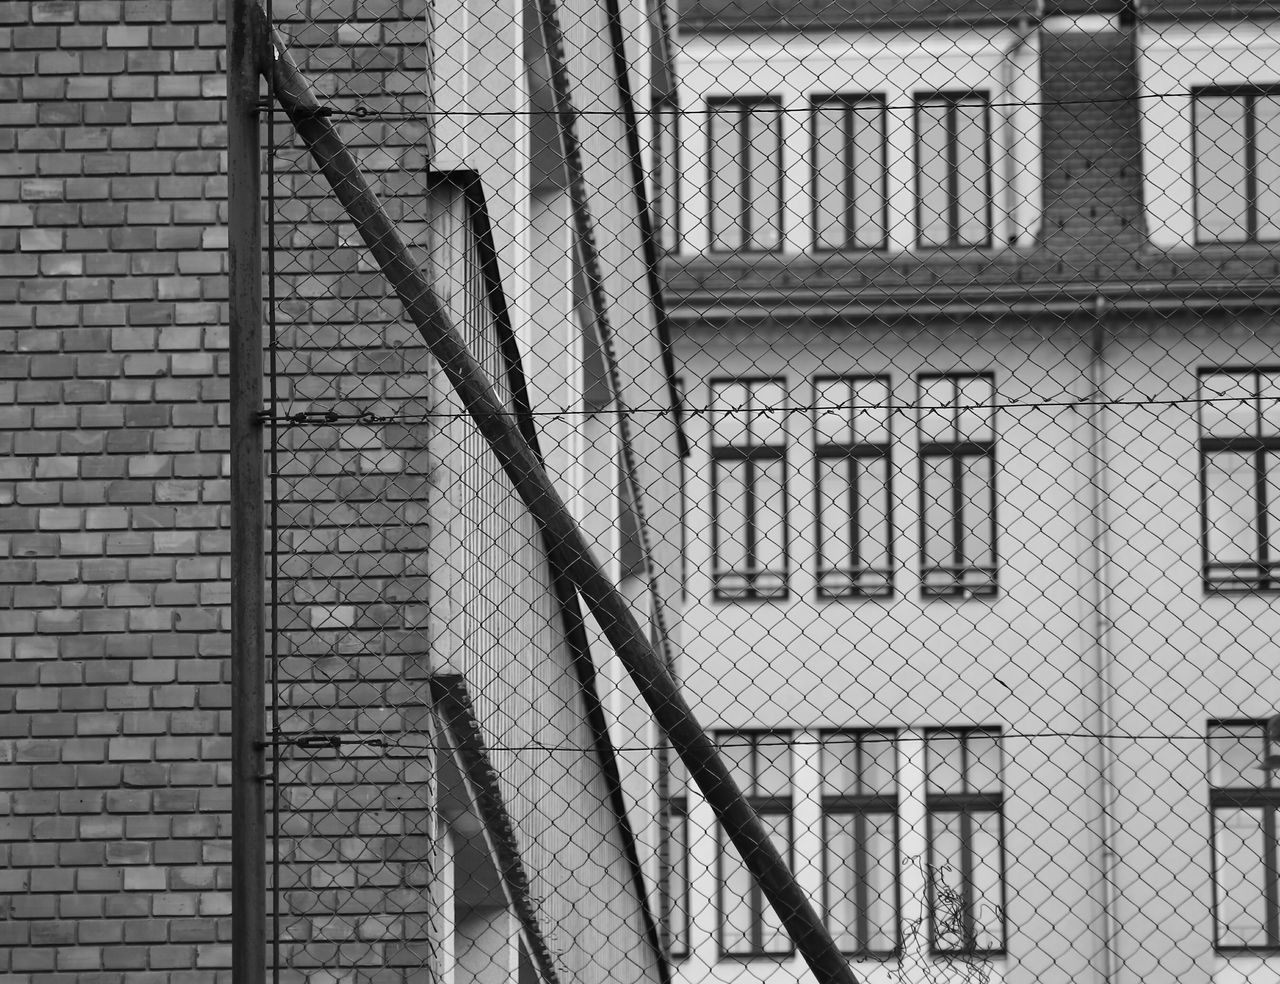 architecture, built structure, building exterior, safety, steps and staircases, staircase, brick wall, fire escape, steps, day, outdoors, no people, full frame, close-up